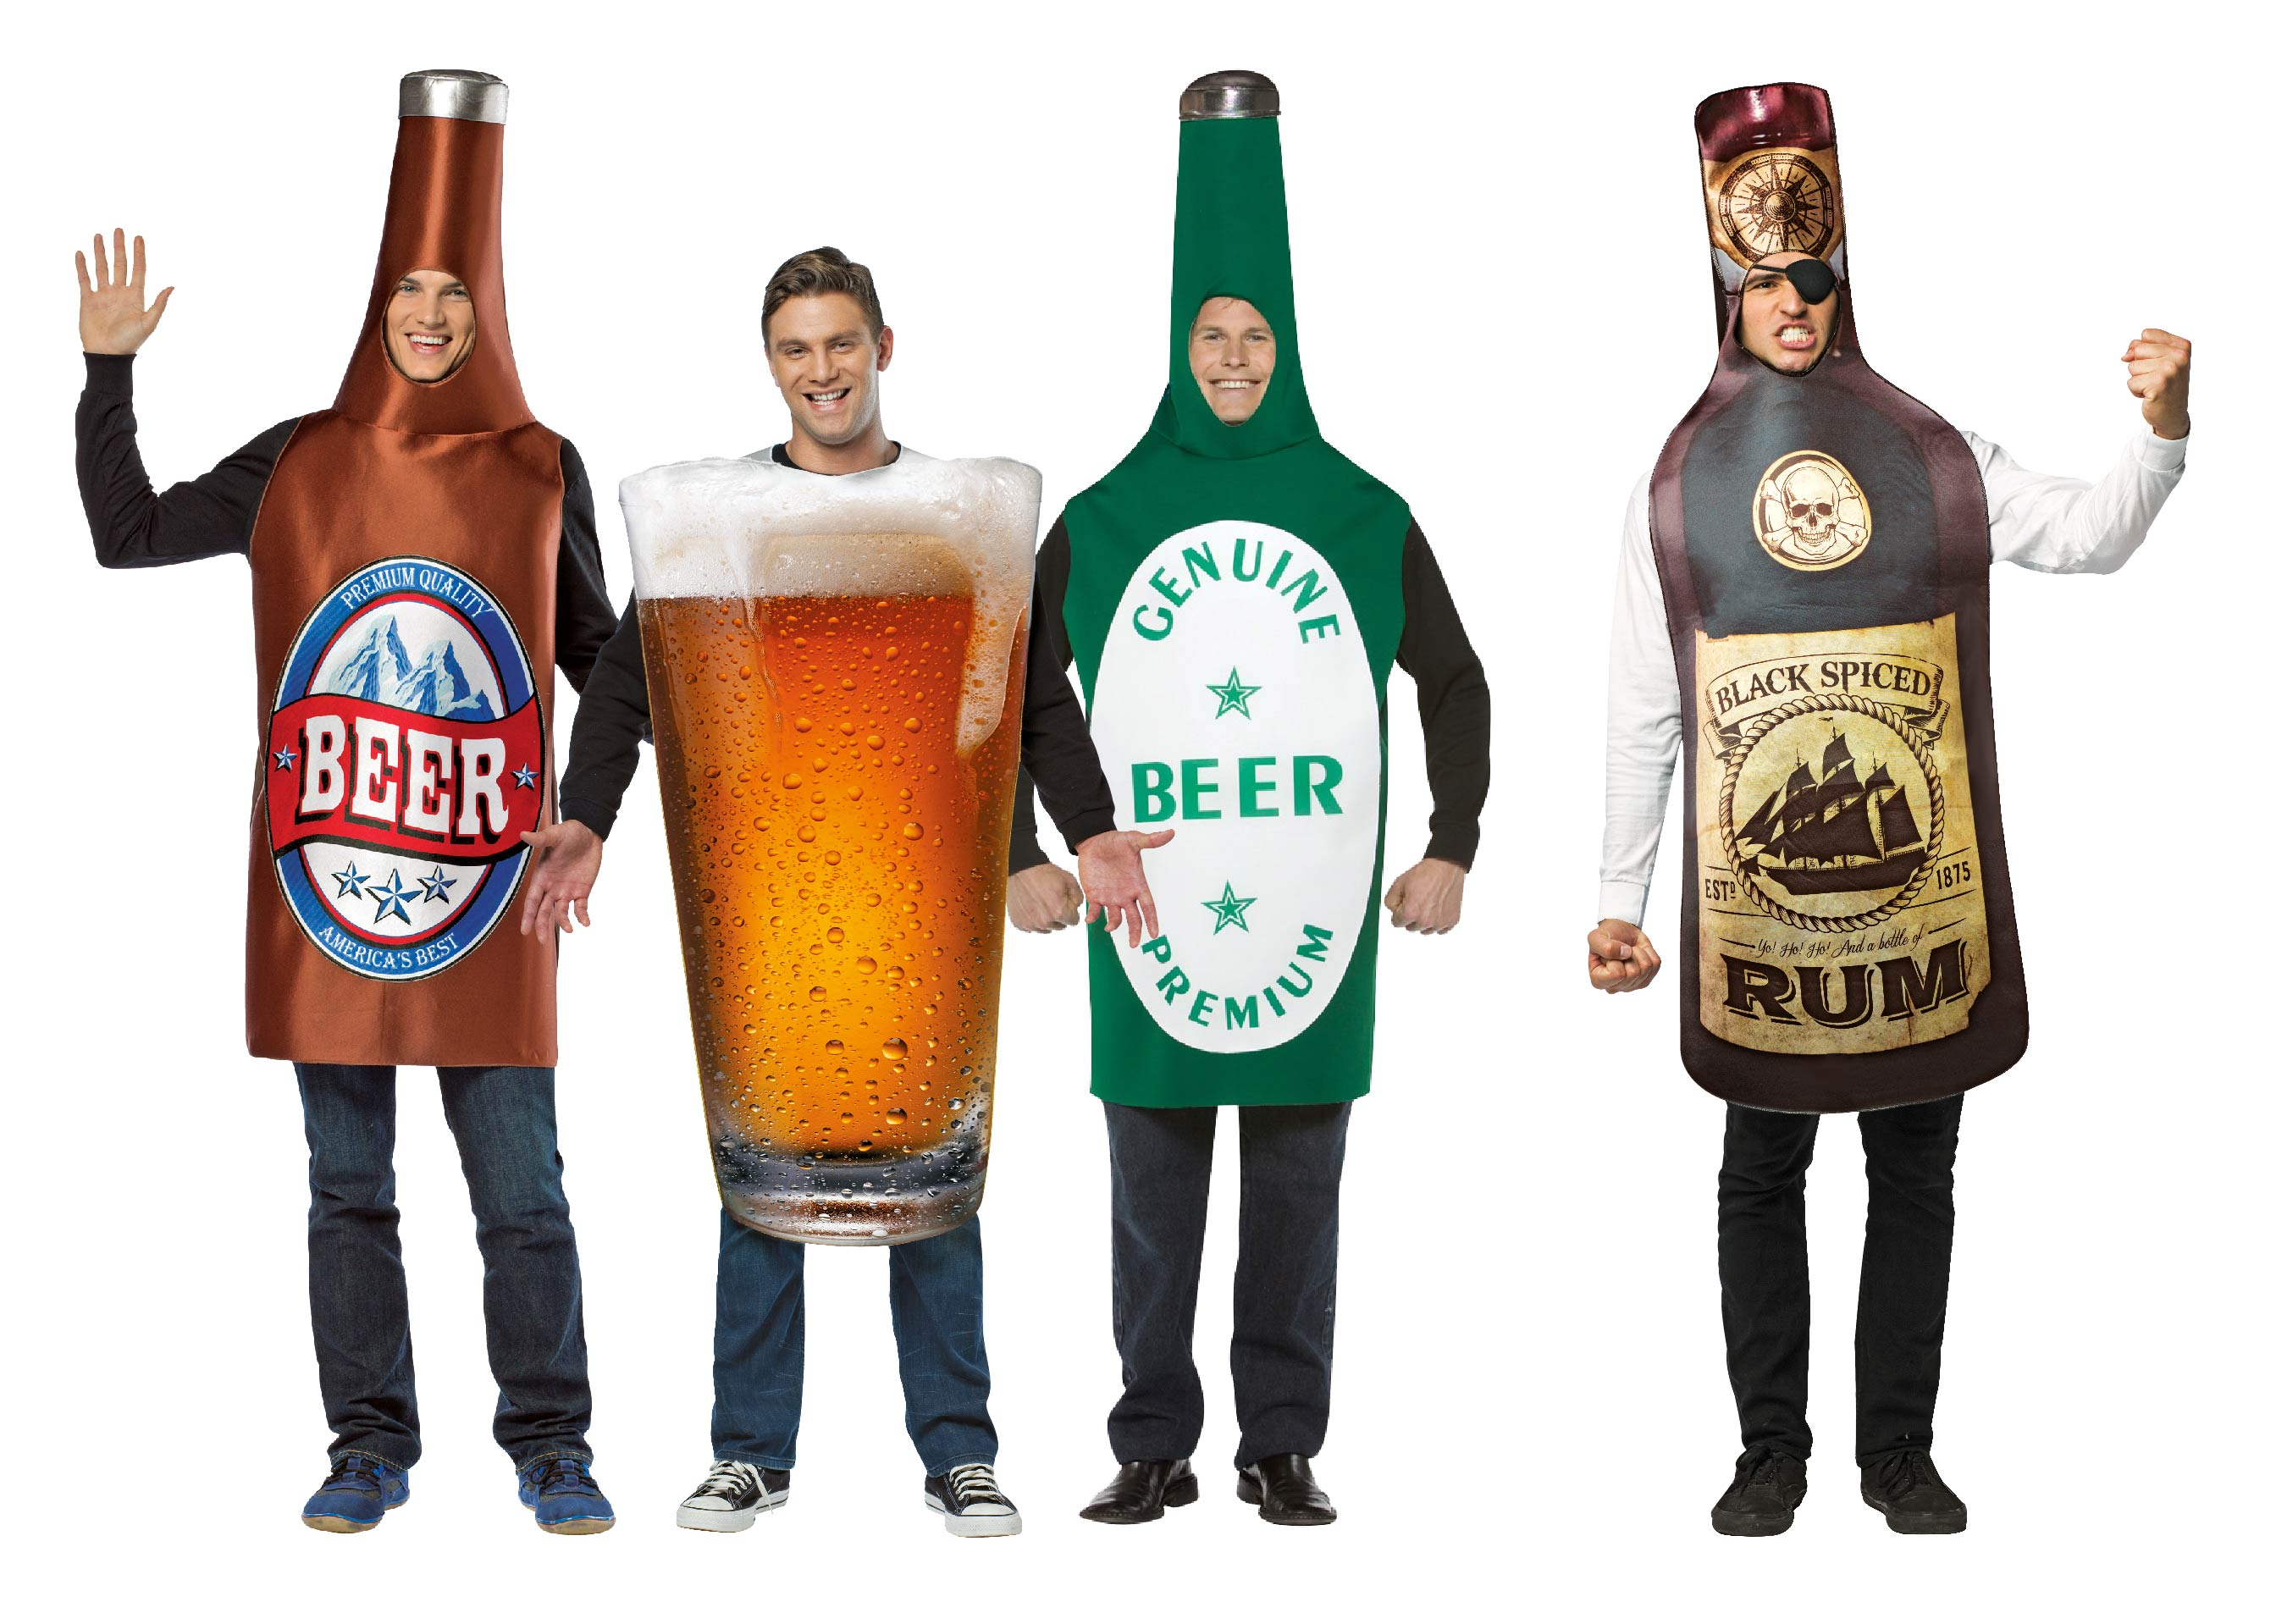 Men wearing Alcohol costumes including beer bottles, pints and rum.